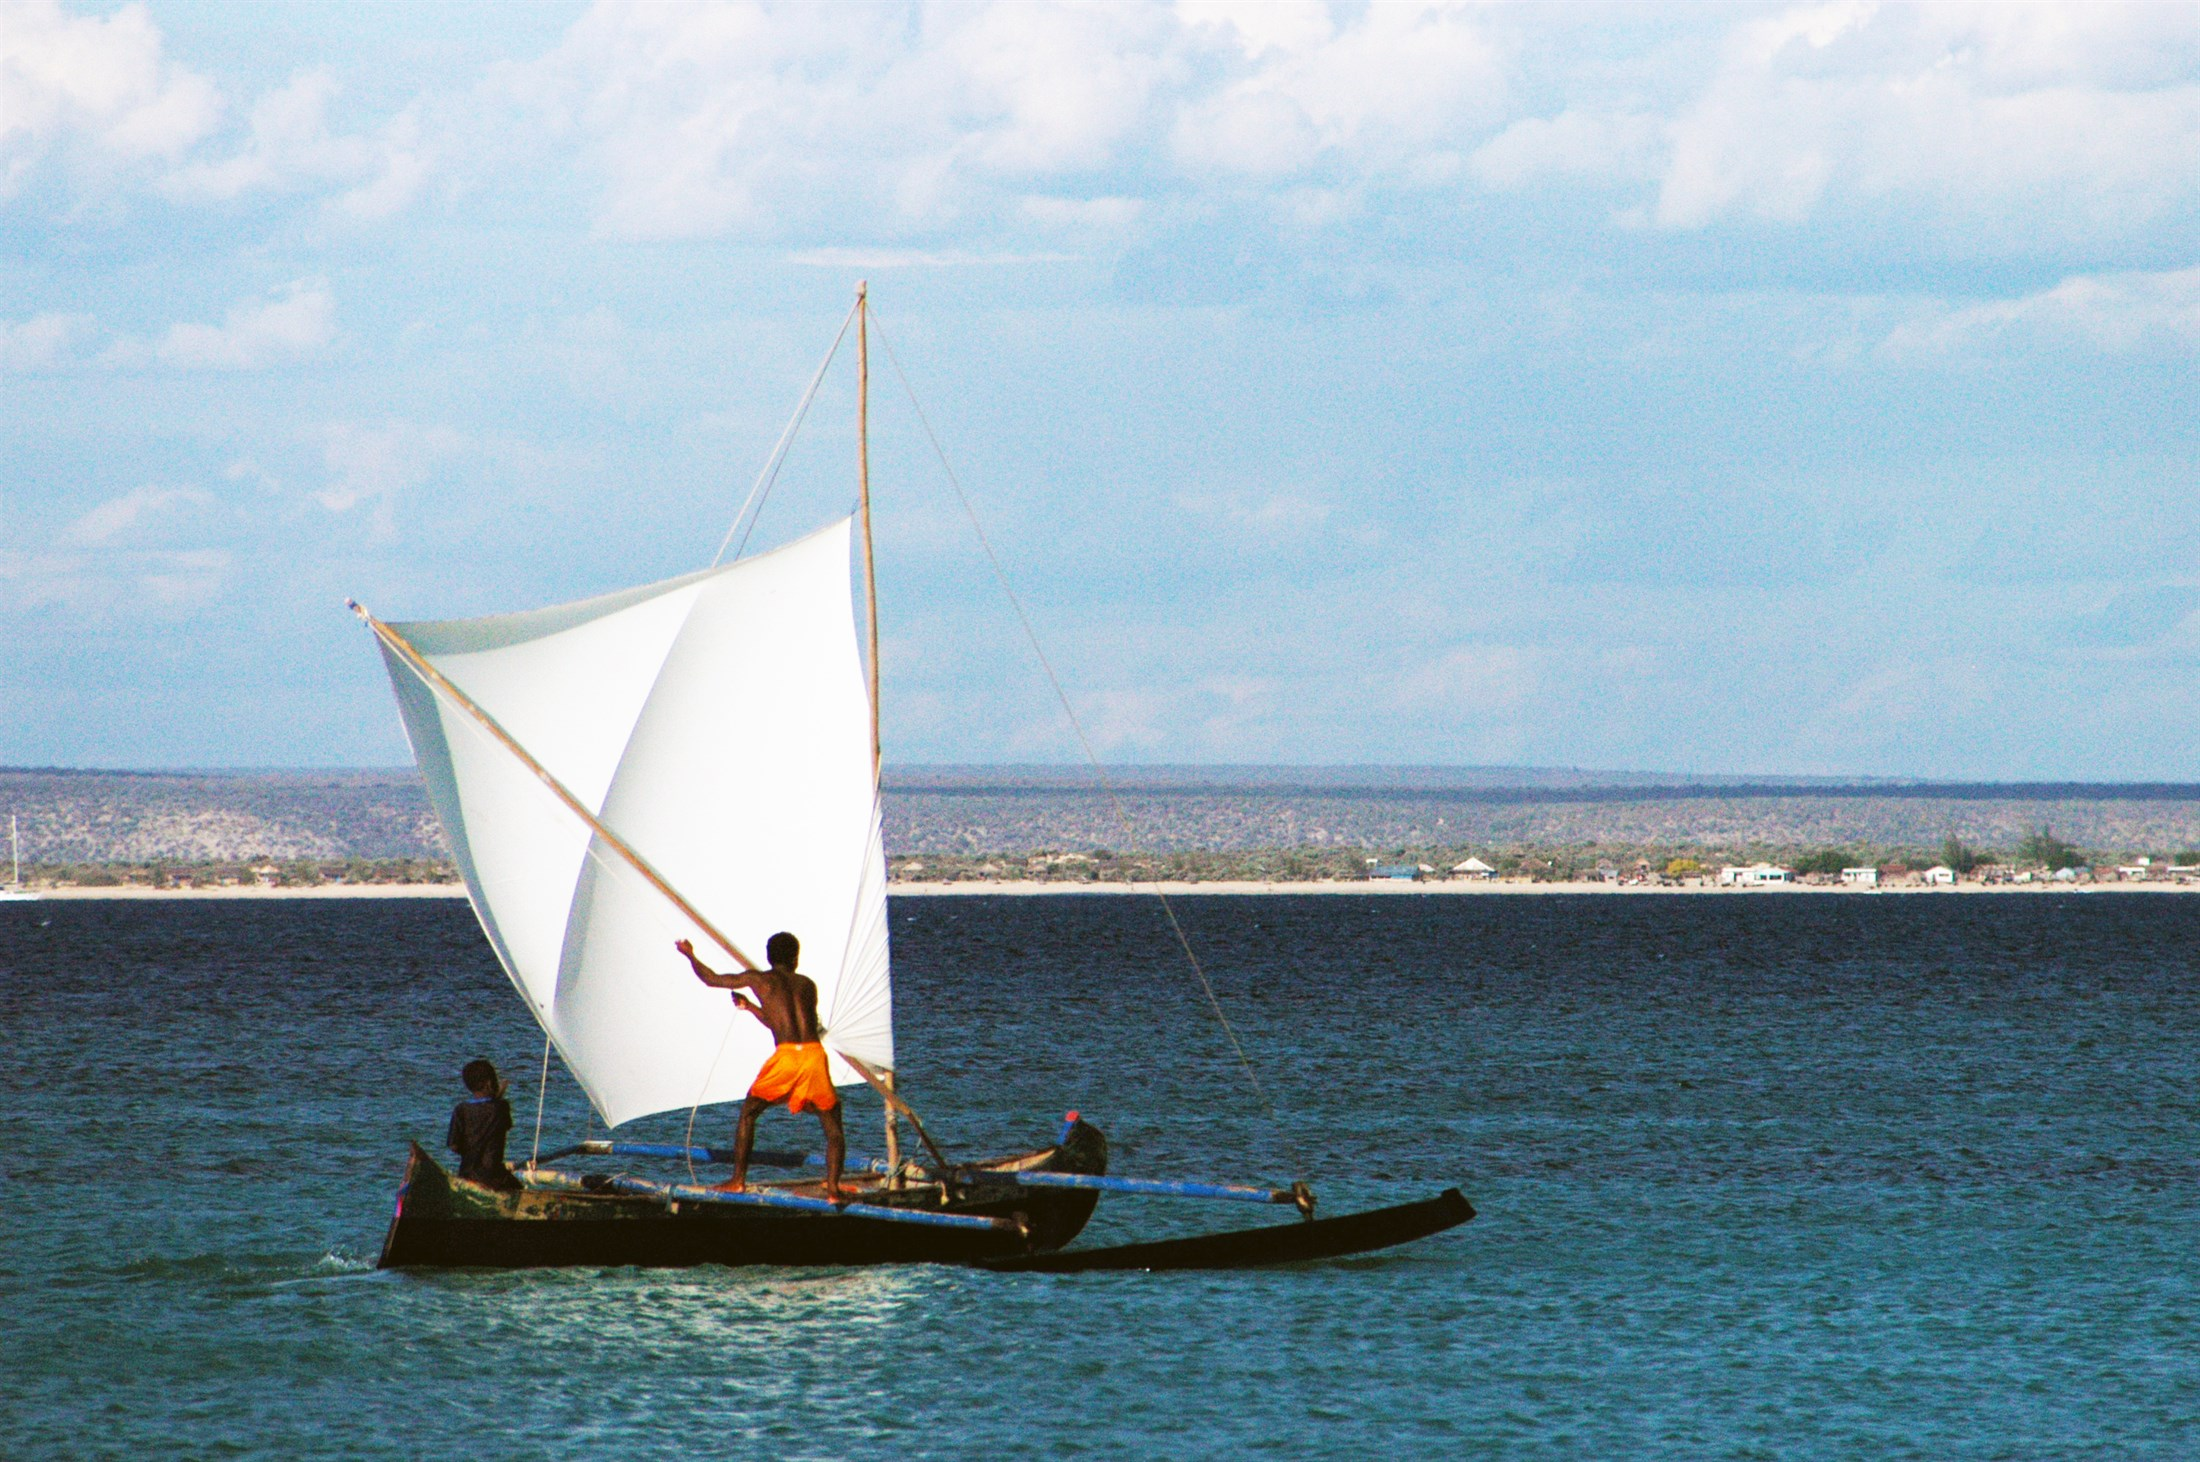 local-peoples-fishing-boat-anakao-south-west-madagascar_fa88-2200x1462px